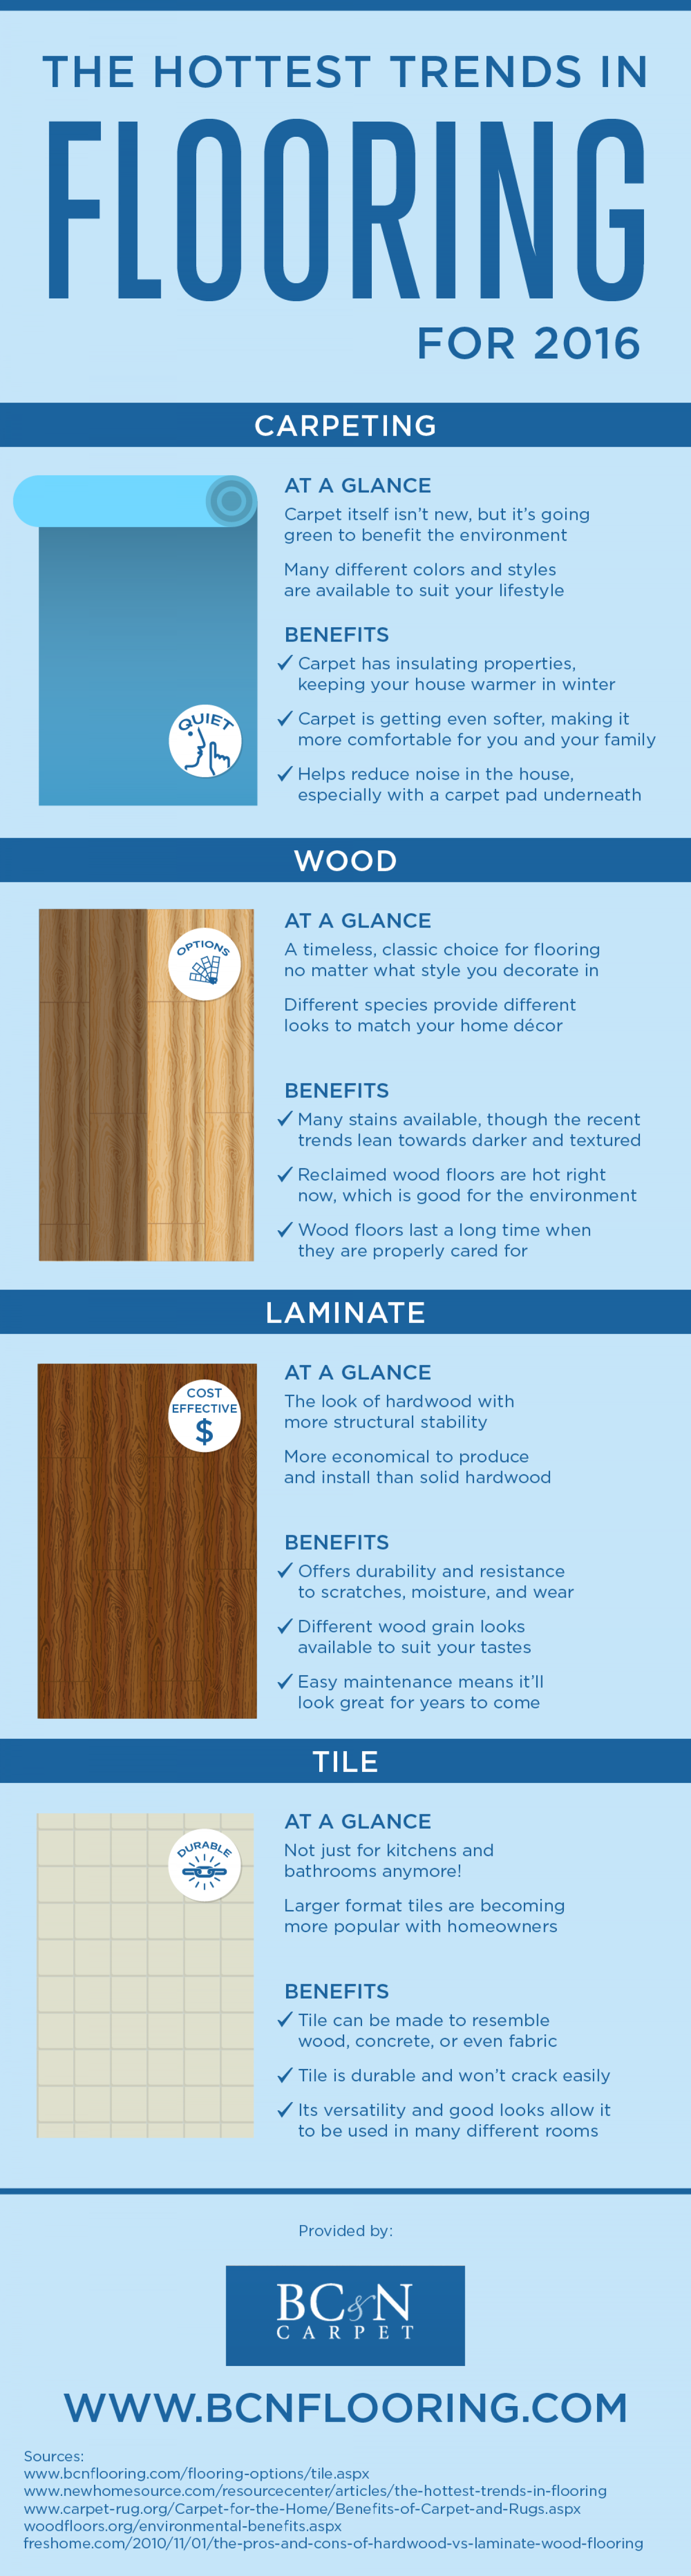 The Hottest Trends in Flooring for 2016 Infographic